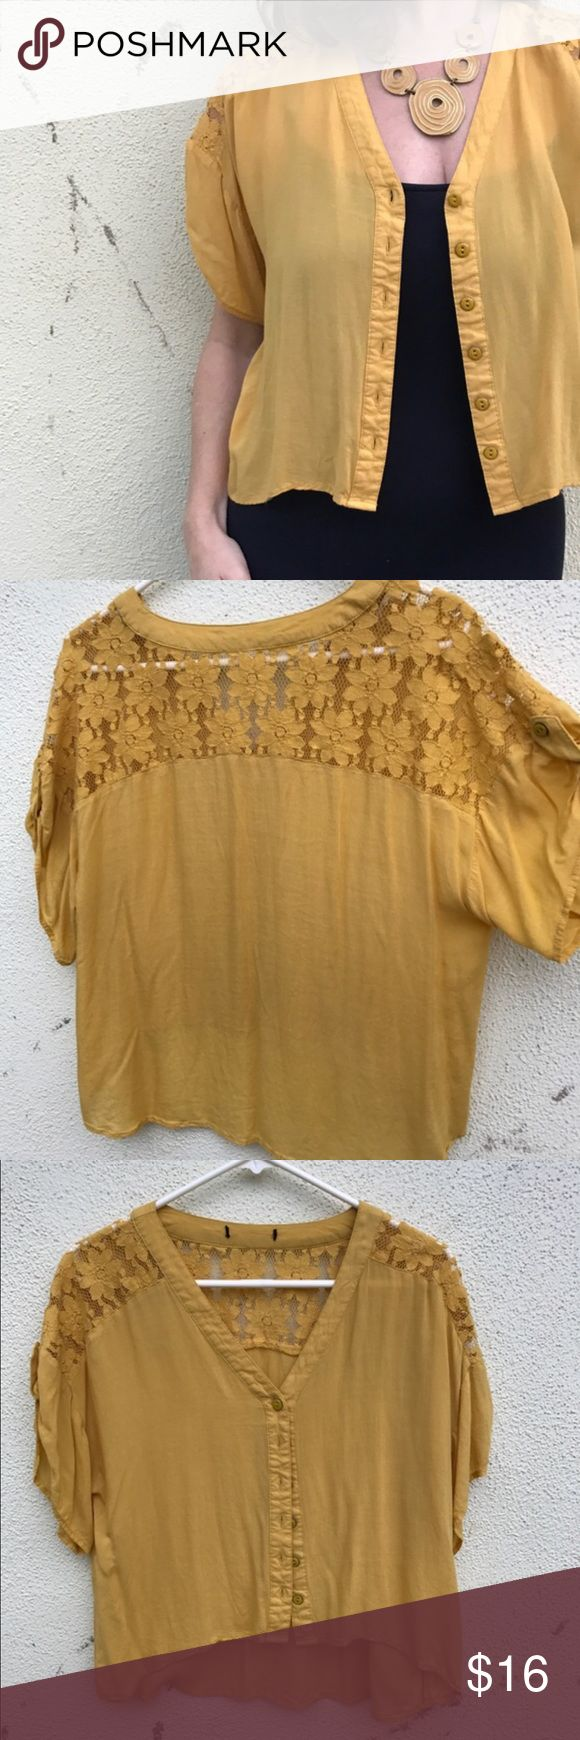 Mustard yellow top blouse Sz L loose LACE boho Flowy and sweet,  this v NECK button down top can be worn as an over shirt or a easy throw-on blouse. LACE detailing on shoulder and upper back, 3/4 draped sleeves and nice length. (N8) Anthropologie Tops Blouses